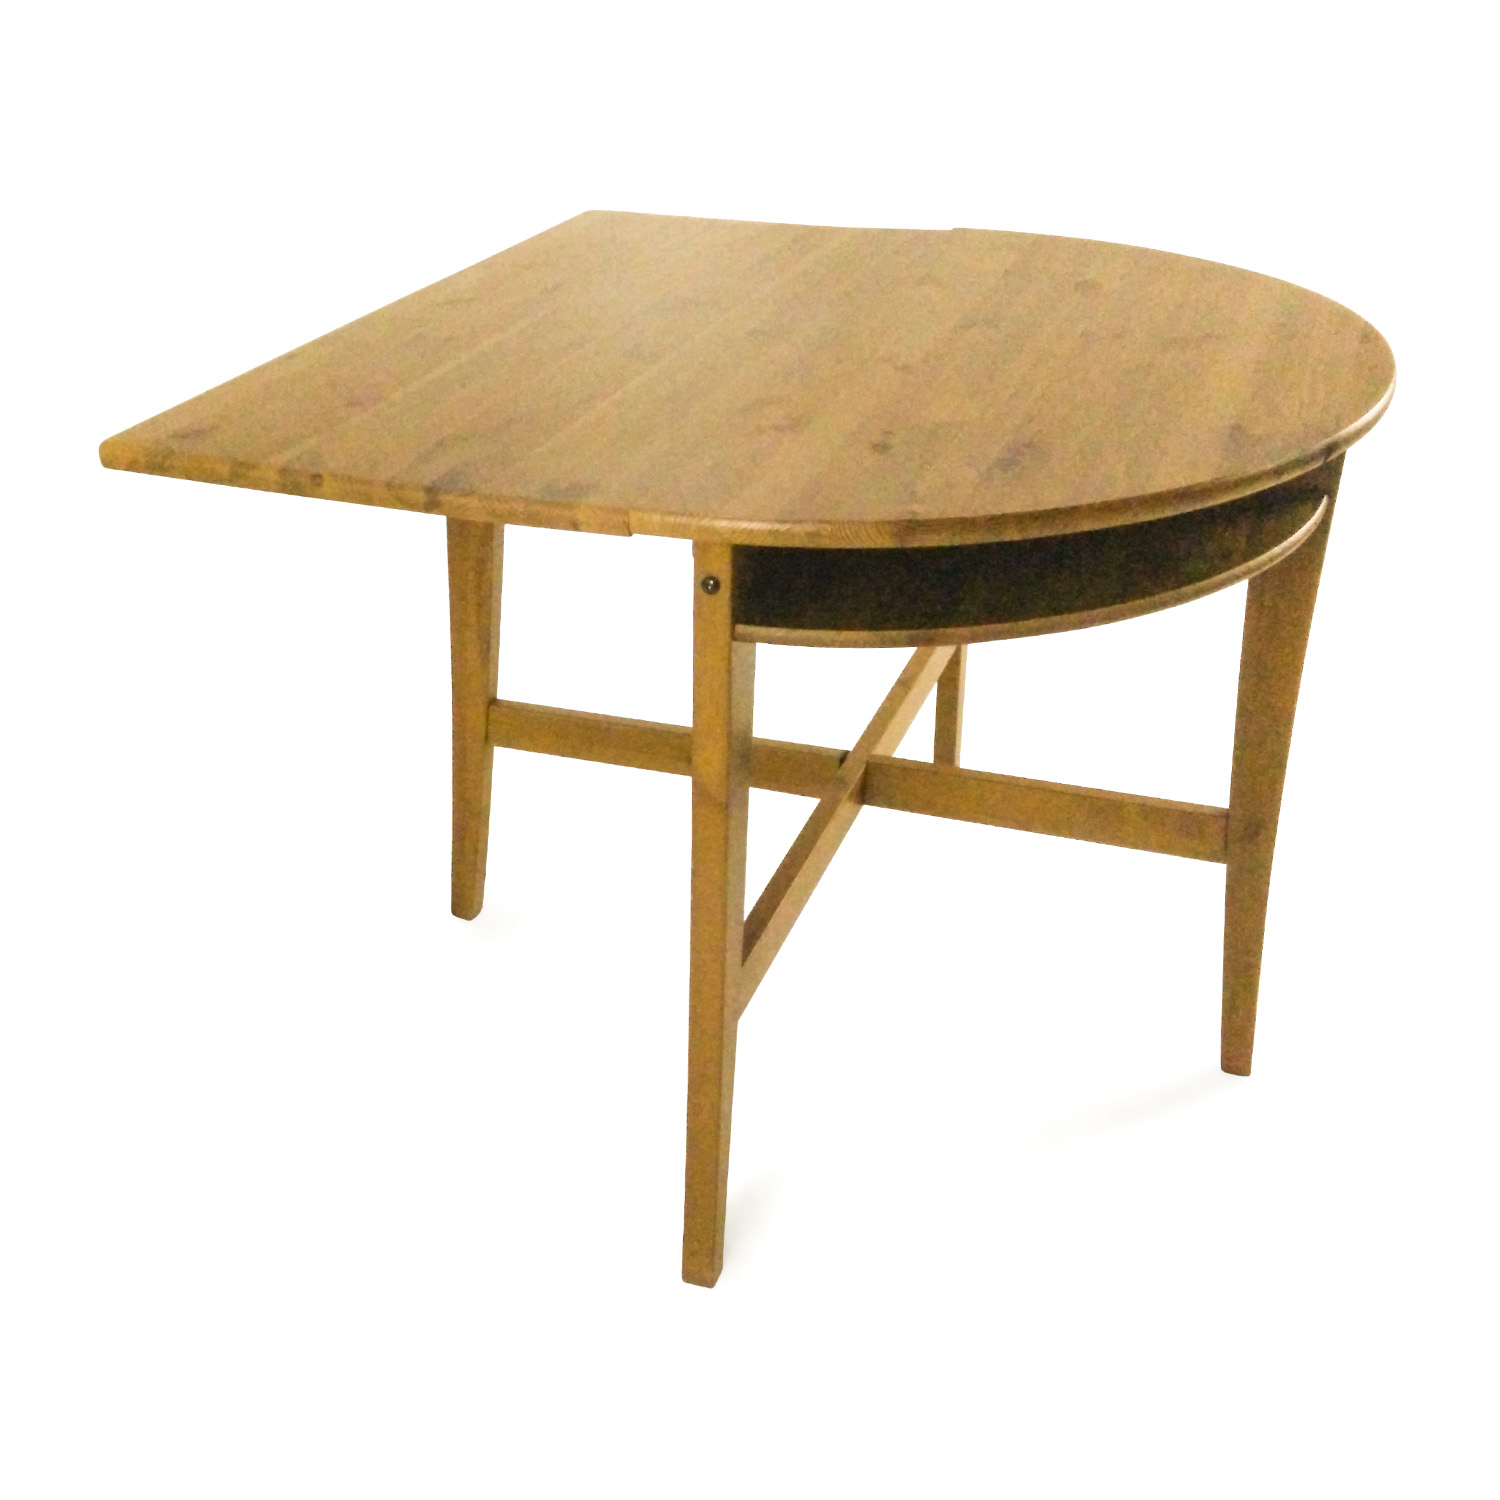 74 off foldable wooden table tables